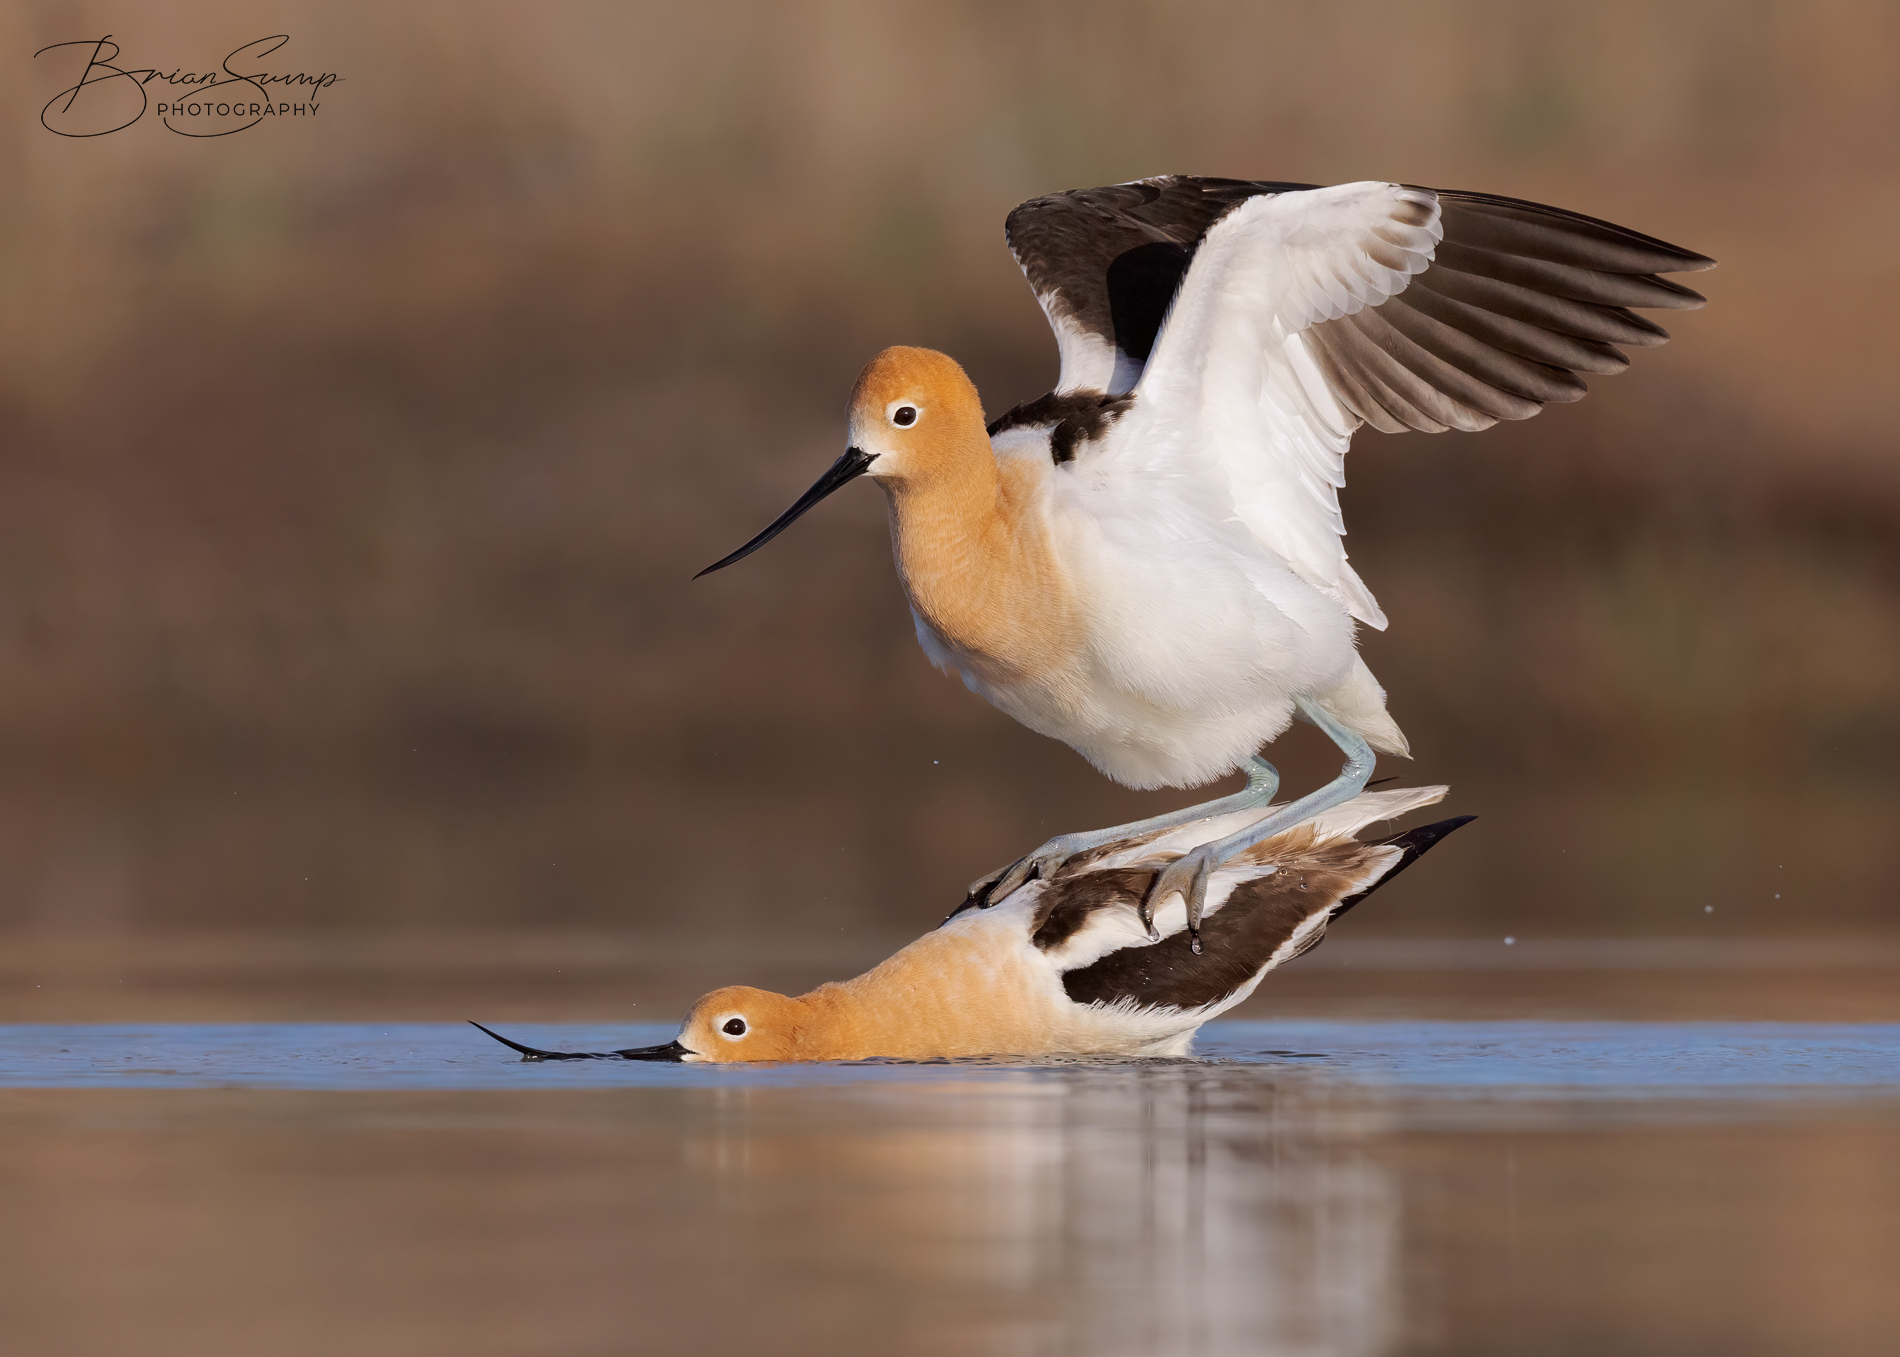 Name:  20210507-Avocets-Mating-2021-Warm-Brian-Sump-BSR50336-4410px-D60-brush-touch-recrop-v3.jpg Views: 168 Size:  588.5 KB